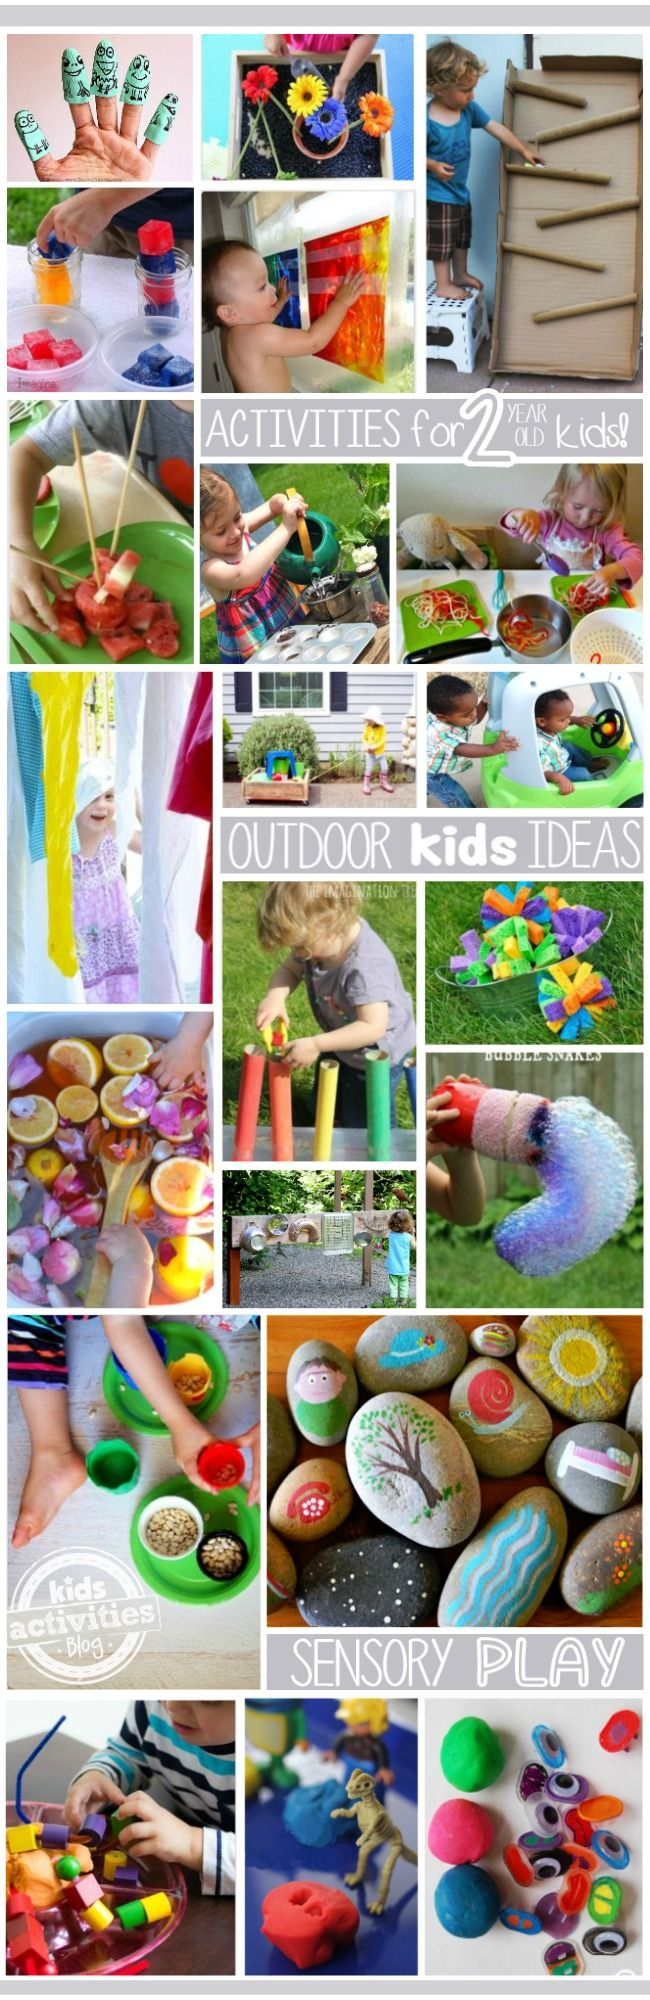 Over 80 ideas for 2 year olds! Sensory, rainbow, outdoor, and paint are just some of the categories filled with toddler activities. This is must pin for those of us with little ones!